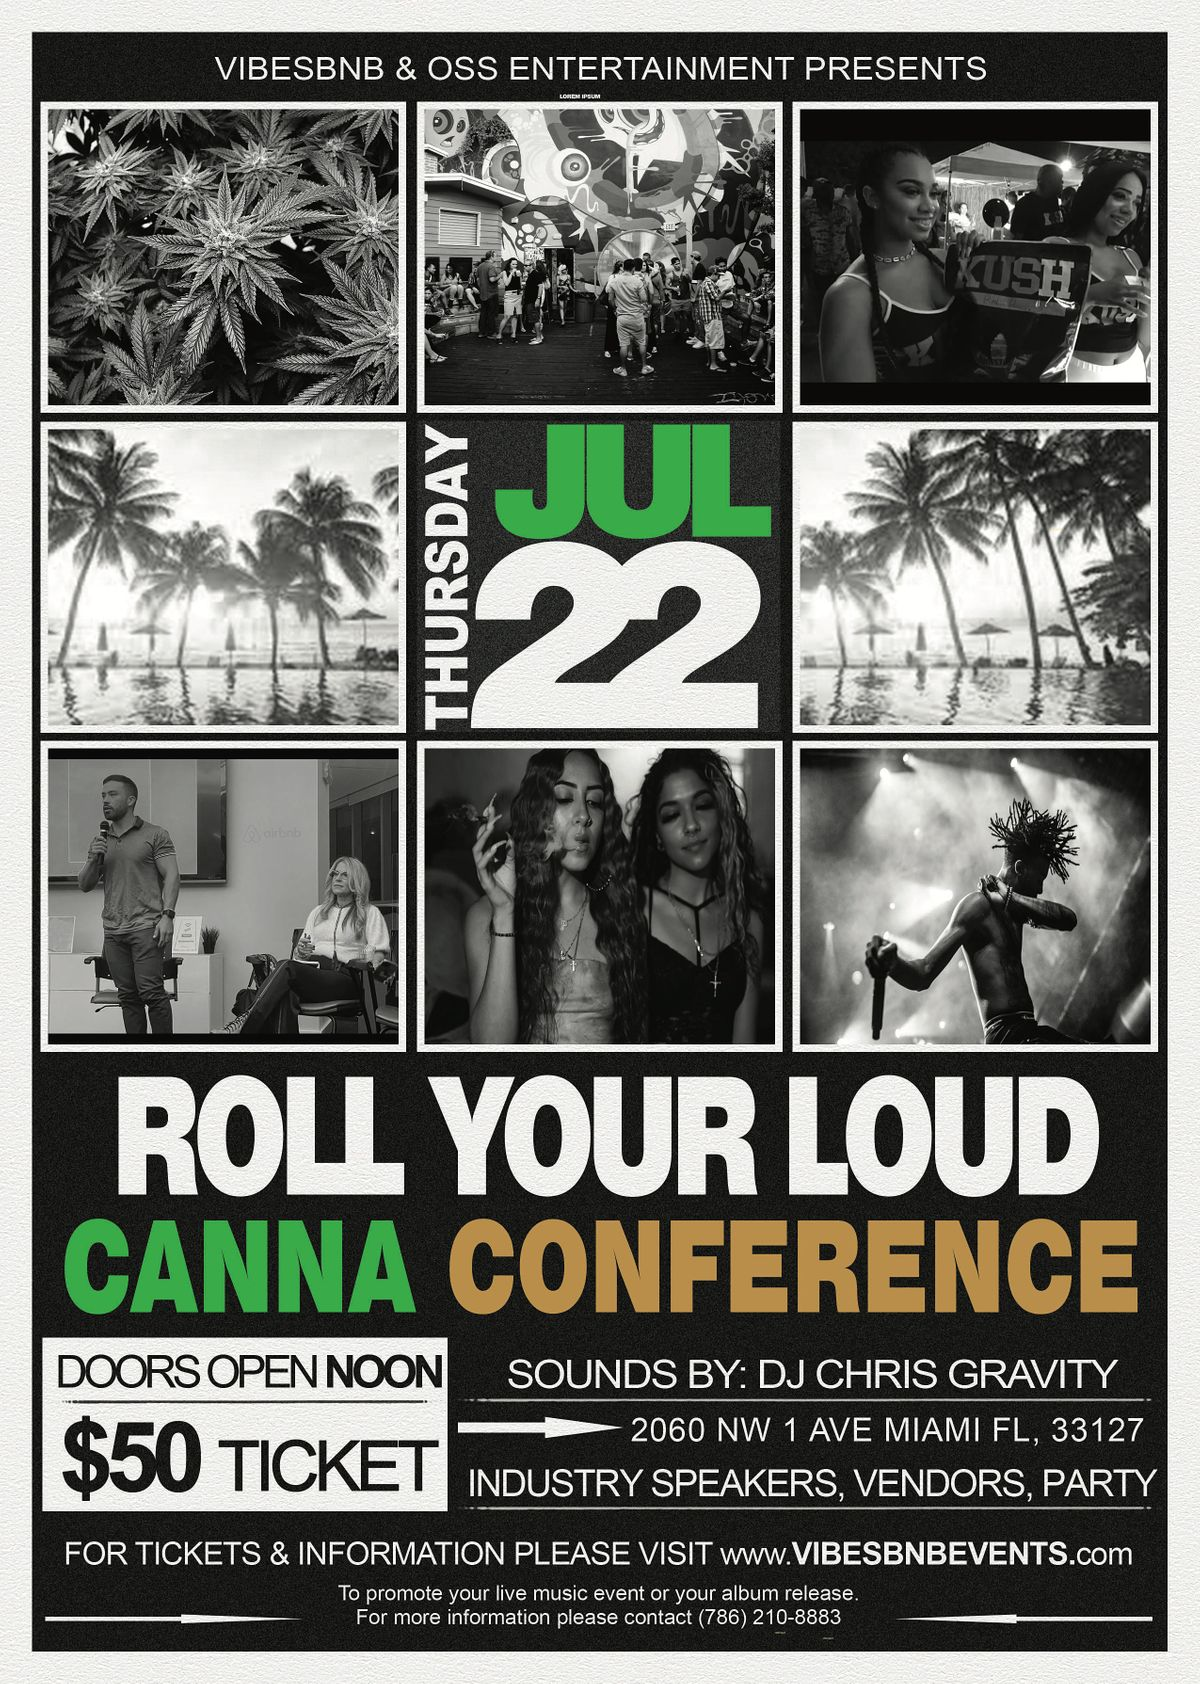 Roll Your Loud Canna Conference